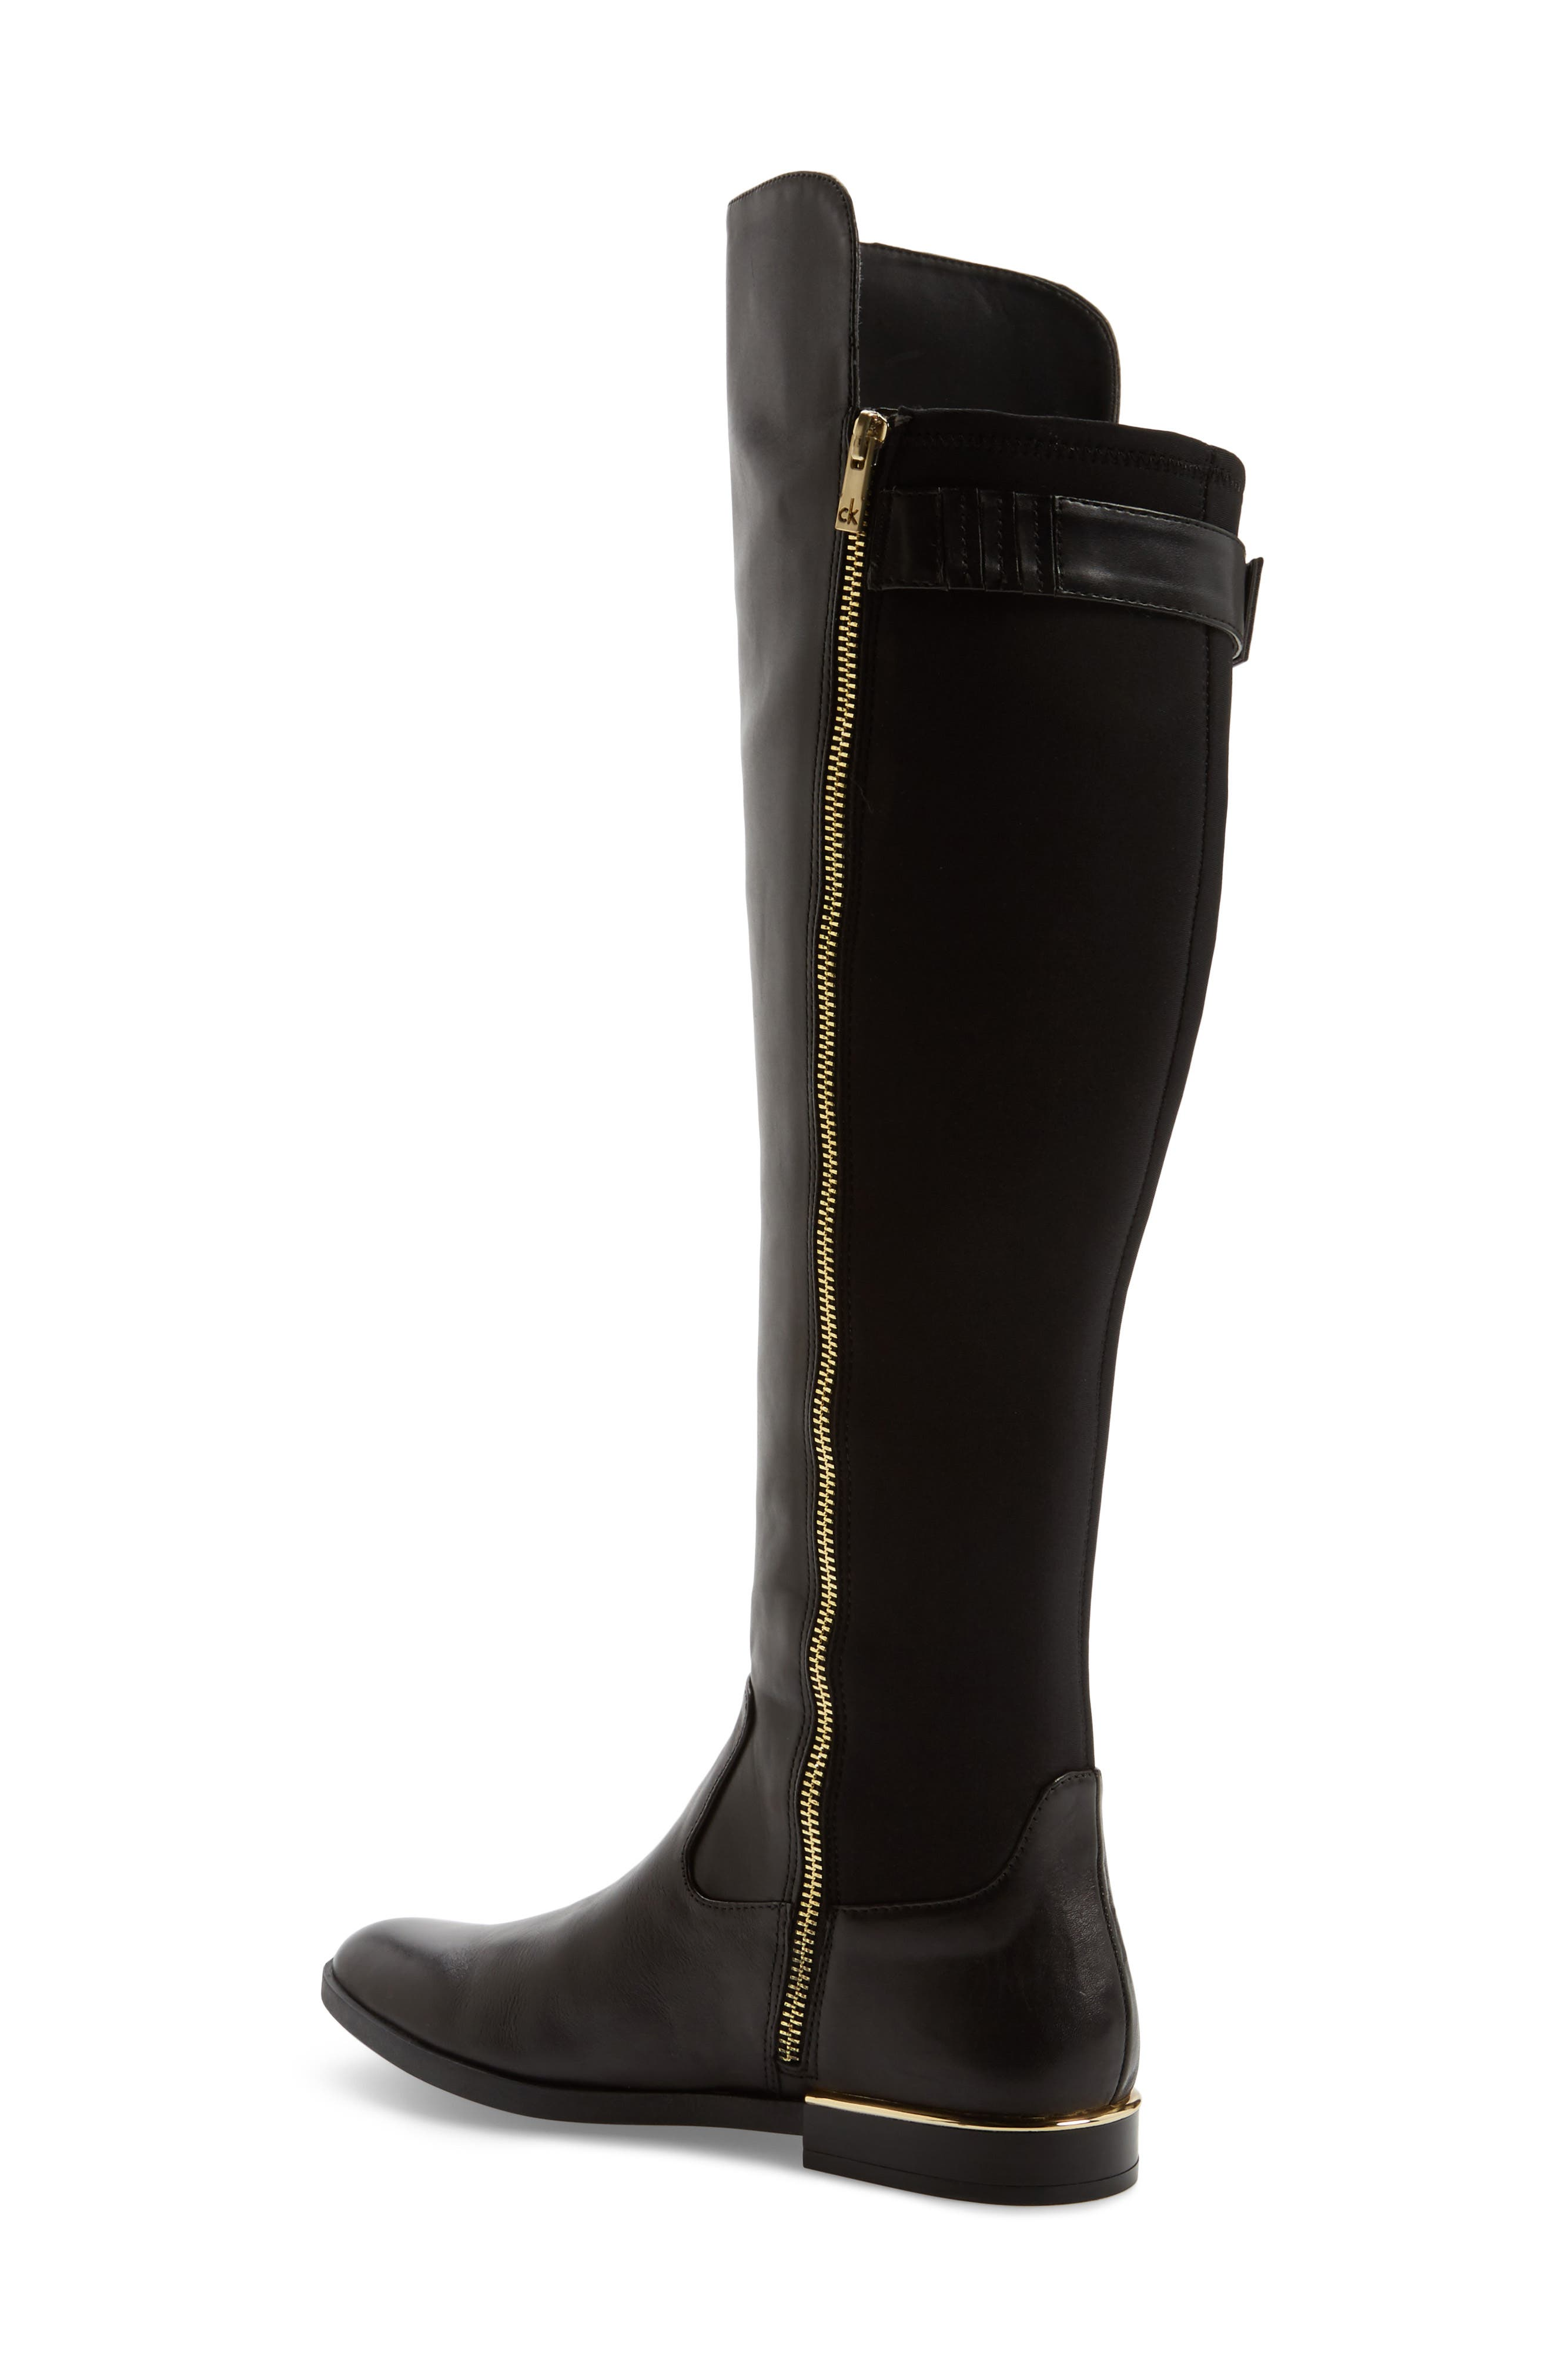 Priscila Over the Knee Boot,                             Alternate thumbnail 2, color,                             Black Leather